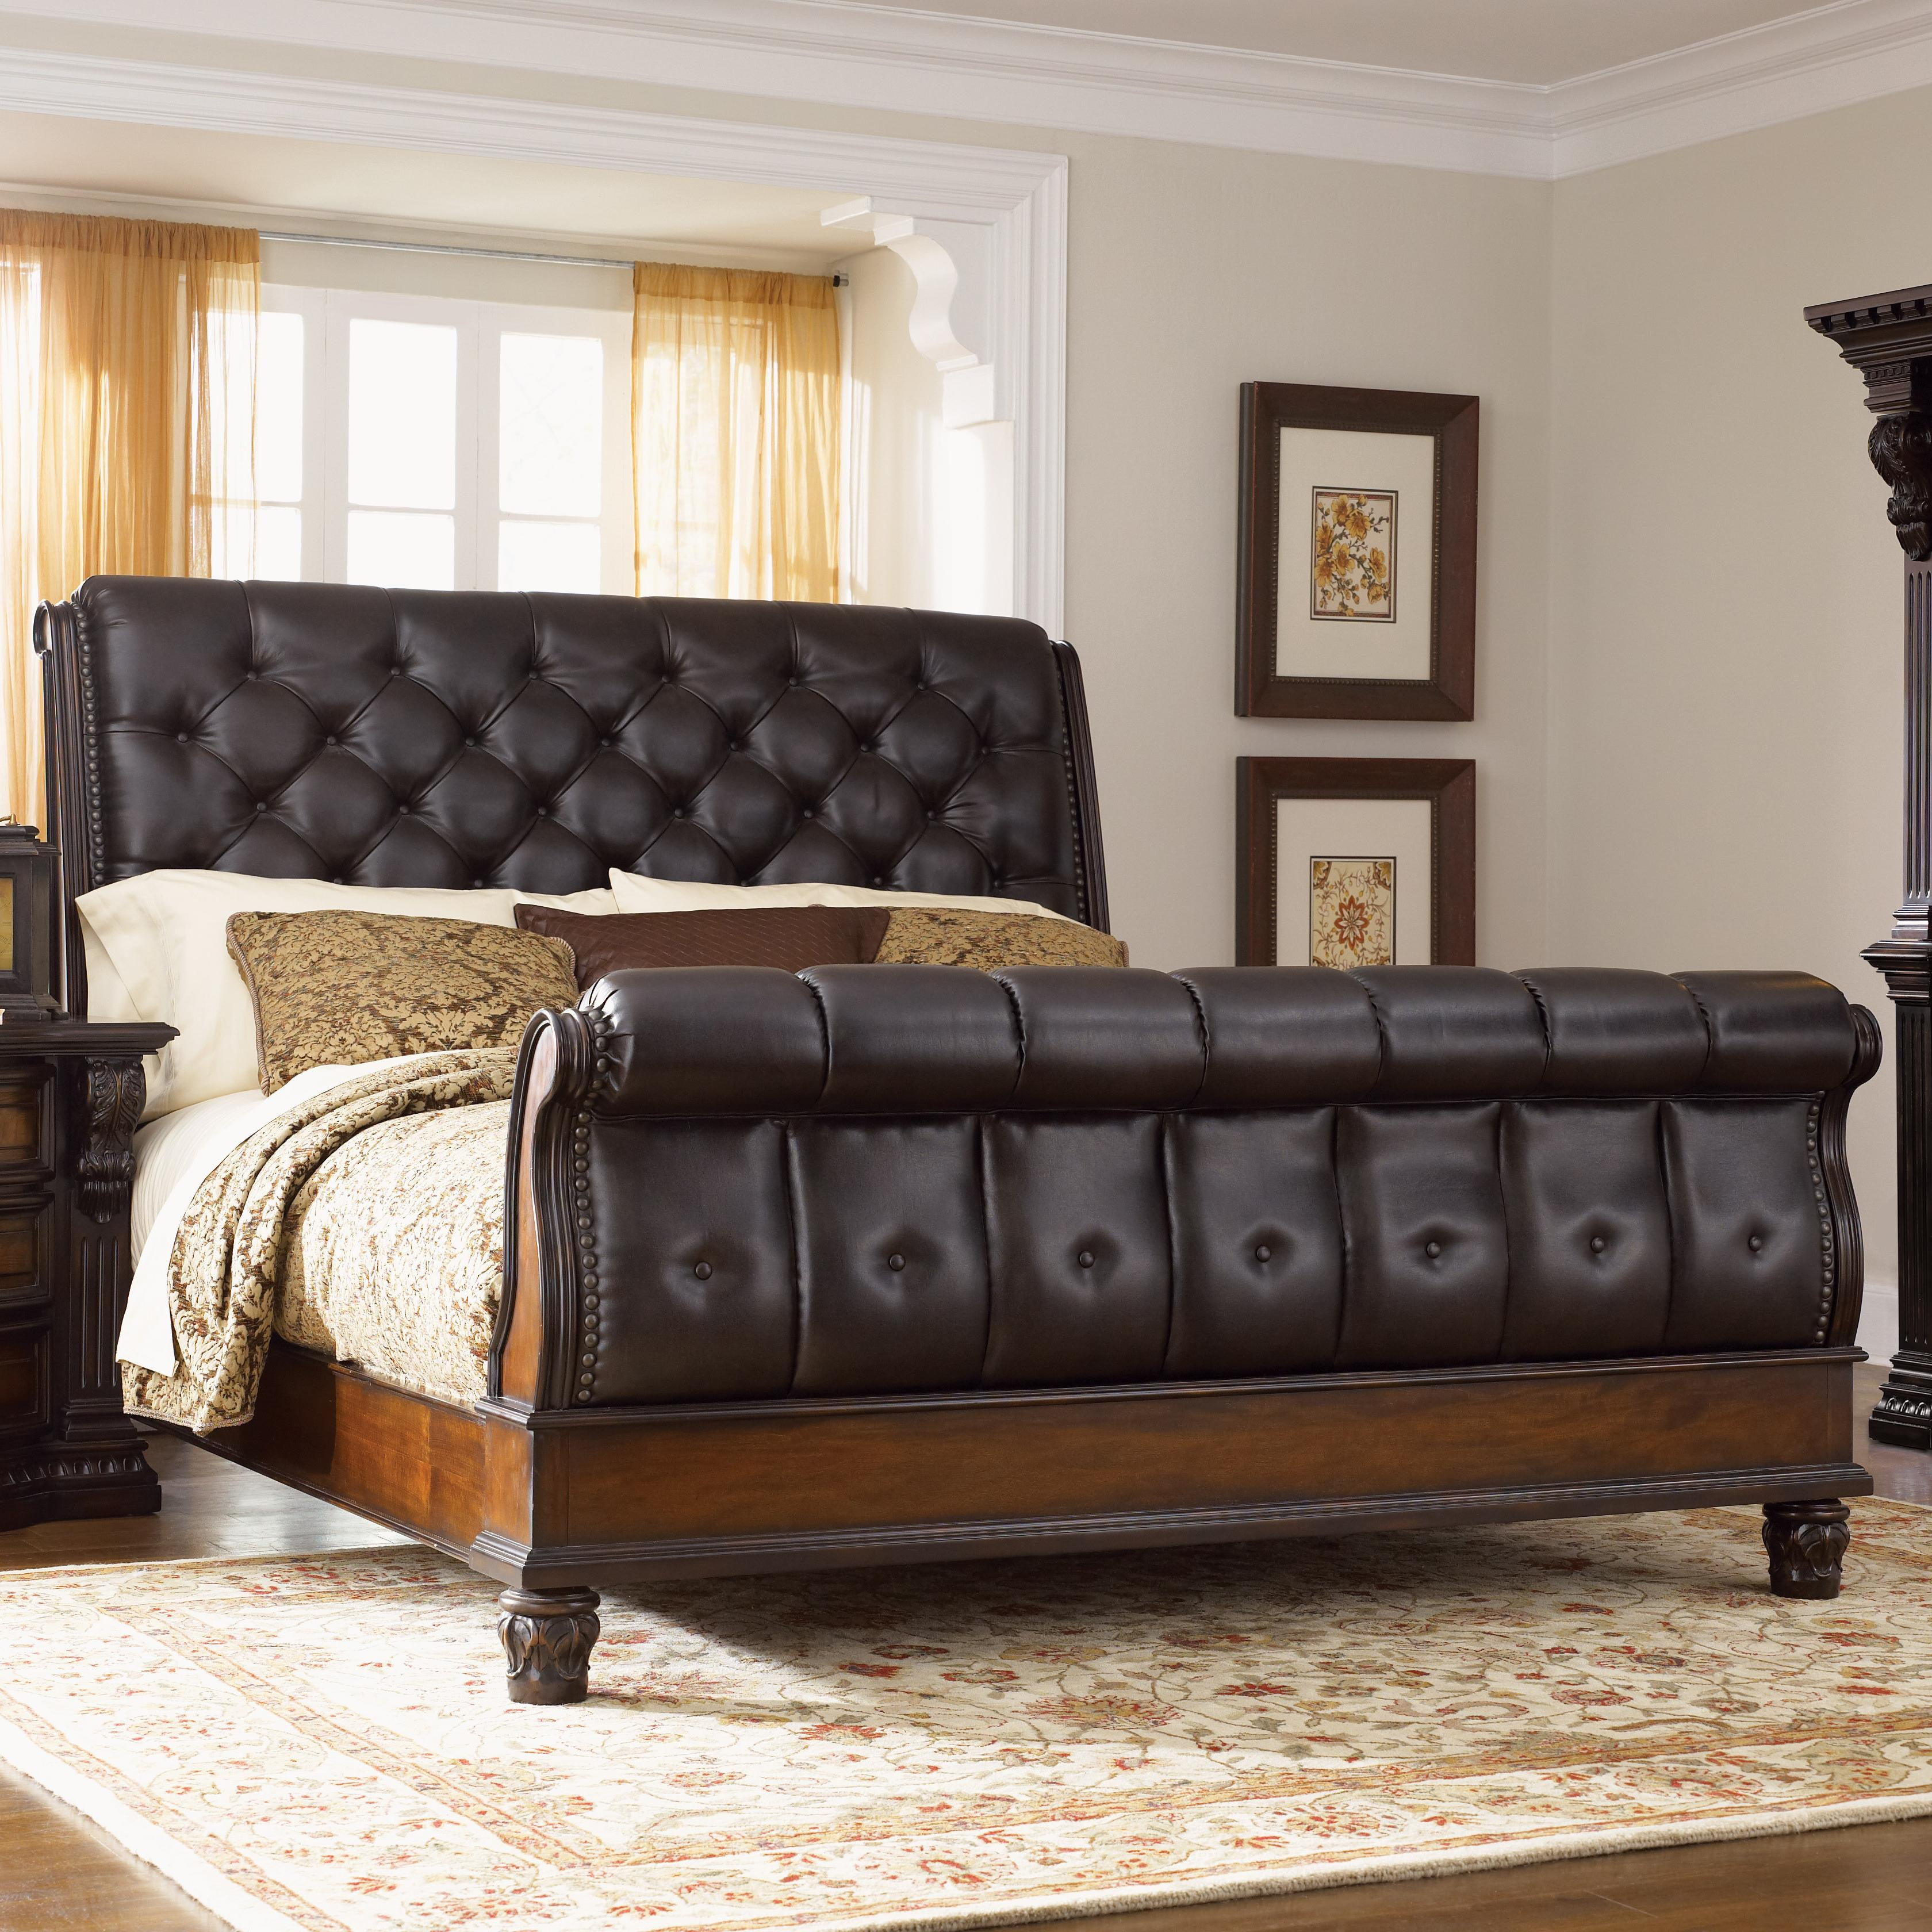 Fairmont Designs Grand Estates Queen Sleigh Bed W/ Leather